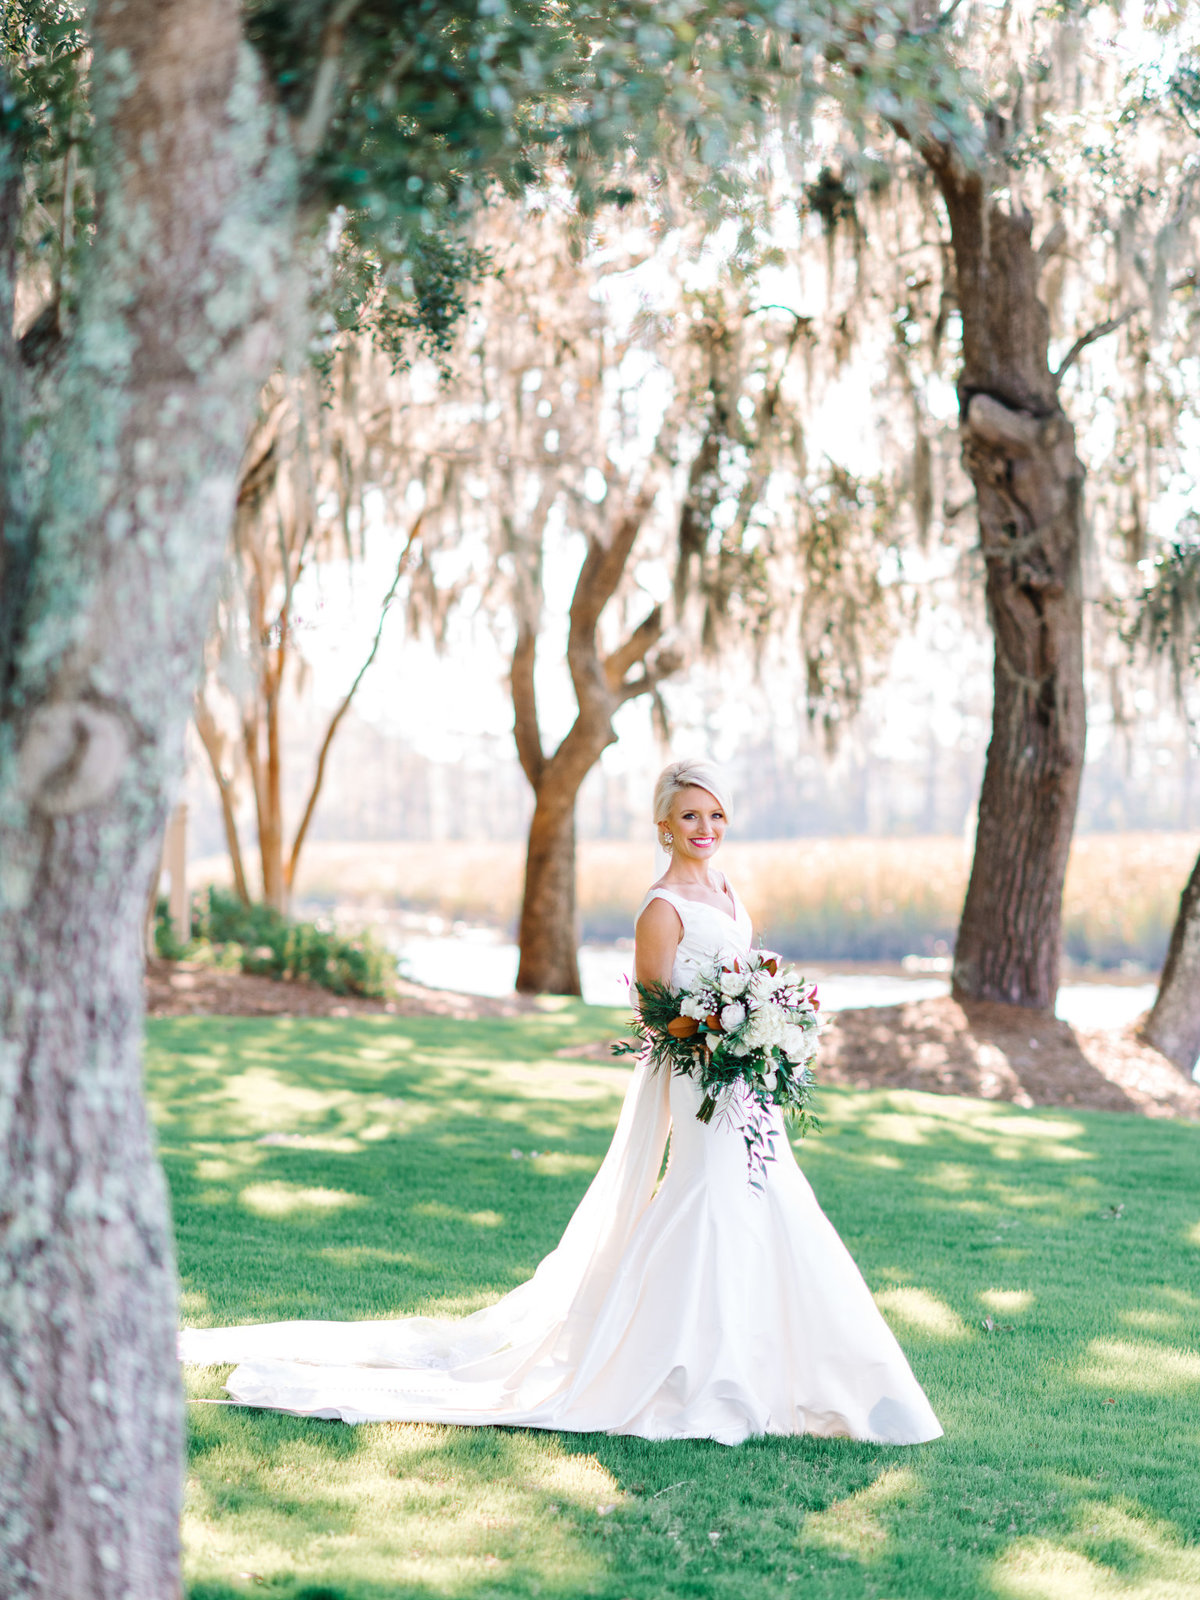 Charleston Wedding Photographer - Caledonia Golf & Fish Club Wedding Photography by Pasha Belman